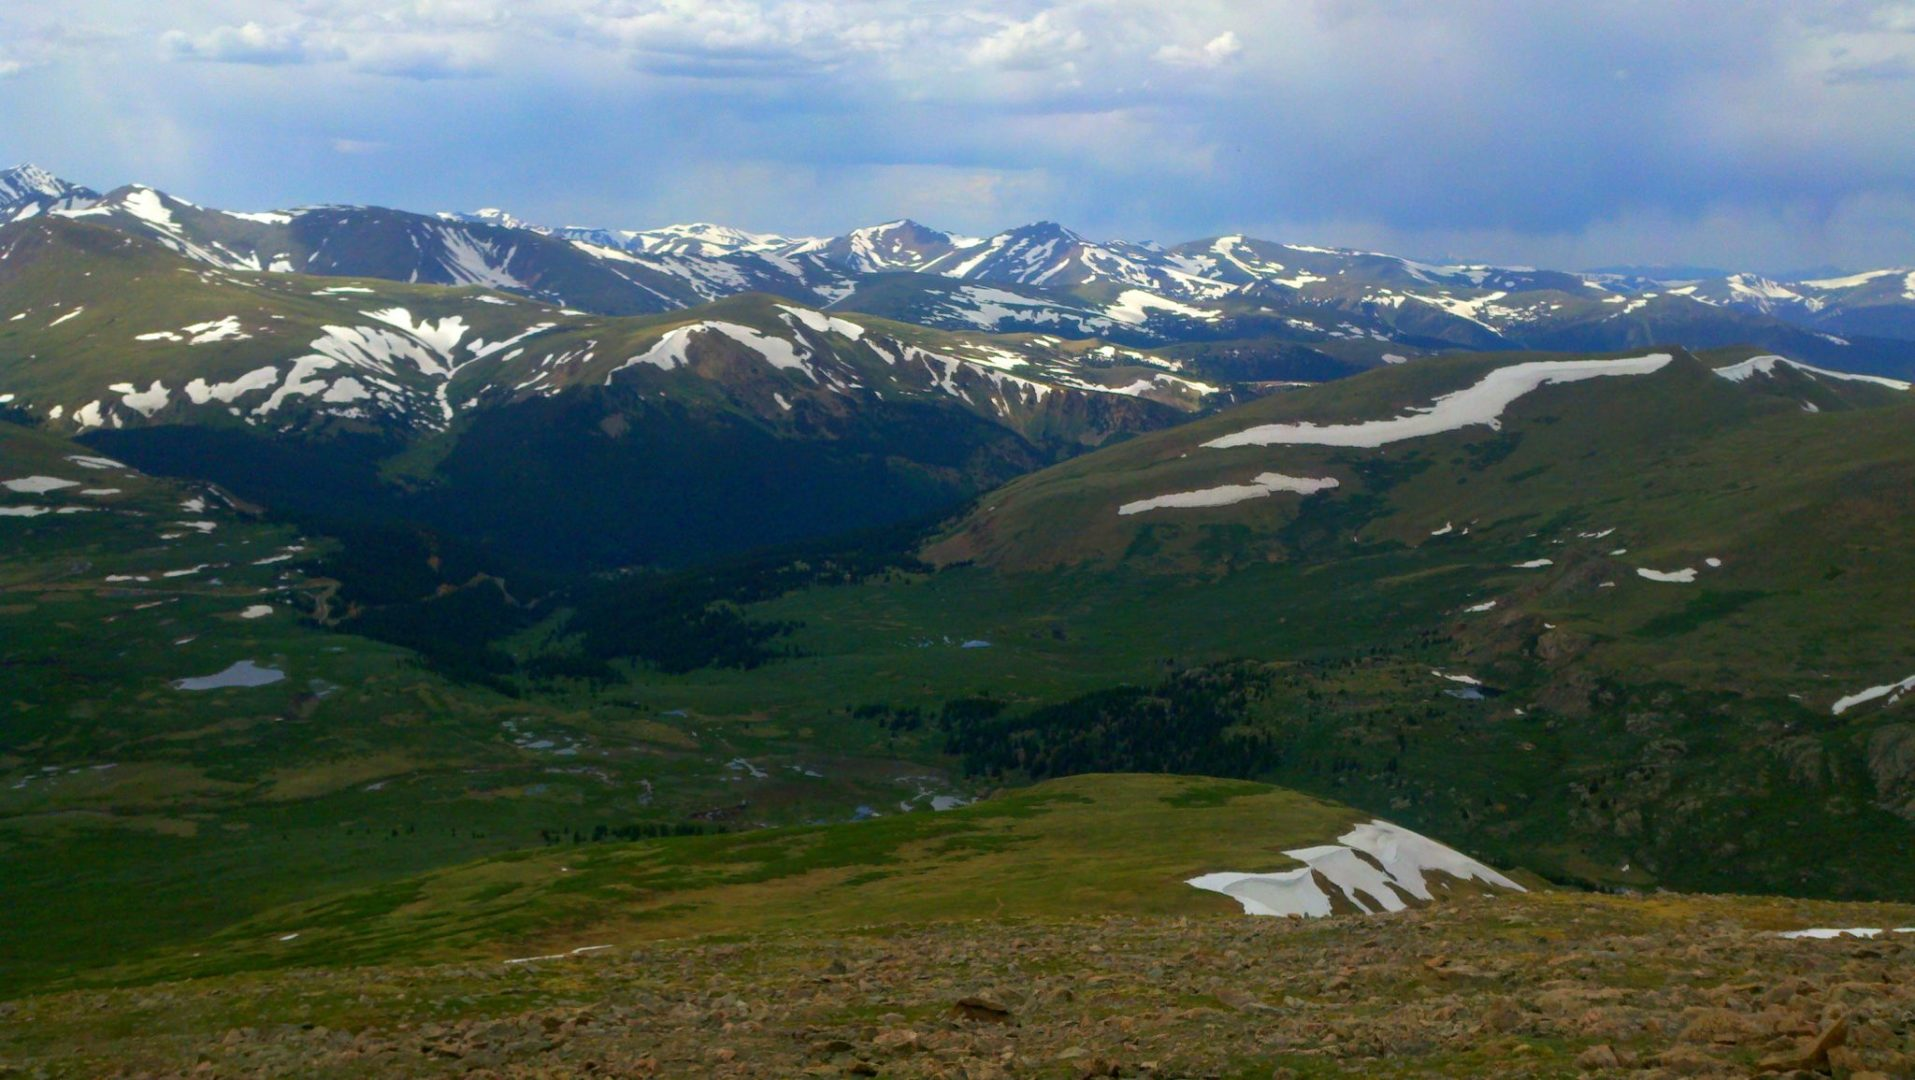 Mt Parnassus (13,574') and Bard Peak (13,647') in the middle, and Englemann Peak (13,368') is the flat ridge heading to the right